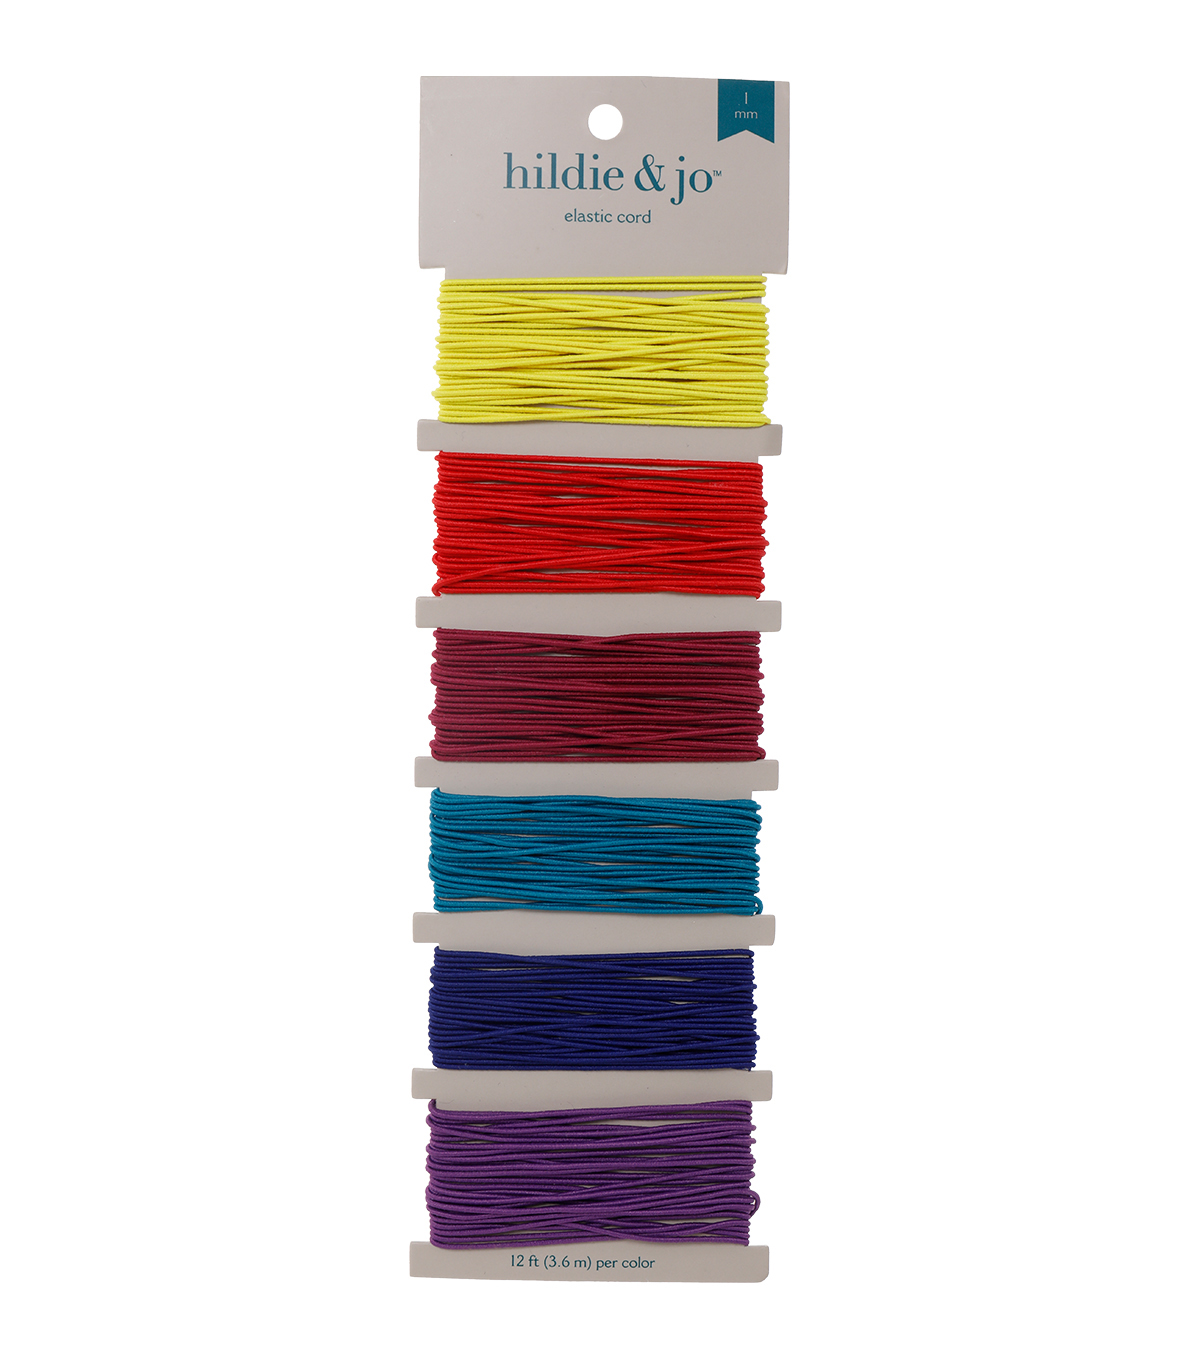 Jewelry Fundamentals Cords & More Thick Elastic Cord Variety Pack, Fiesta